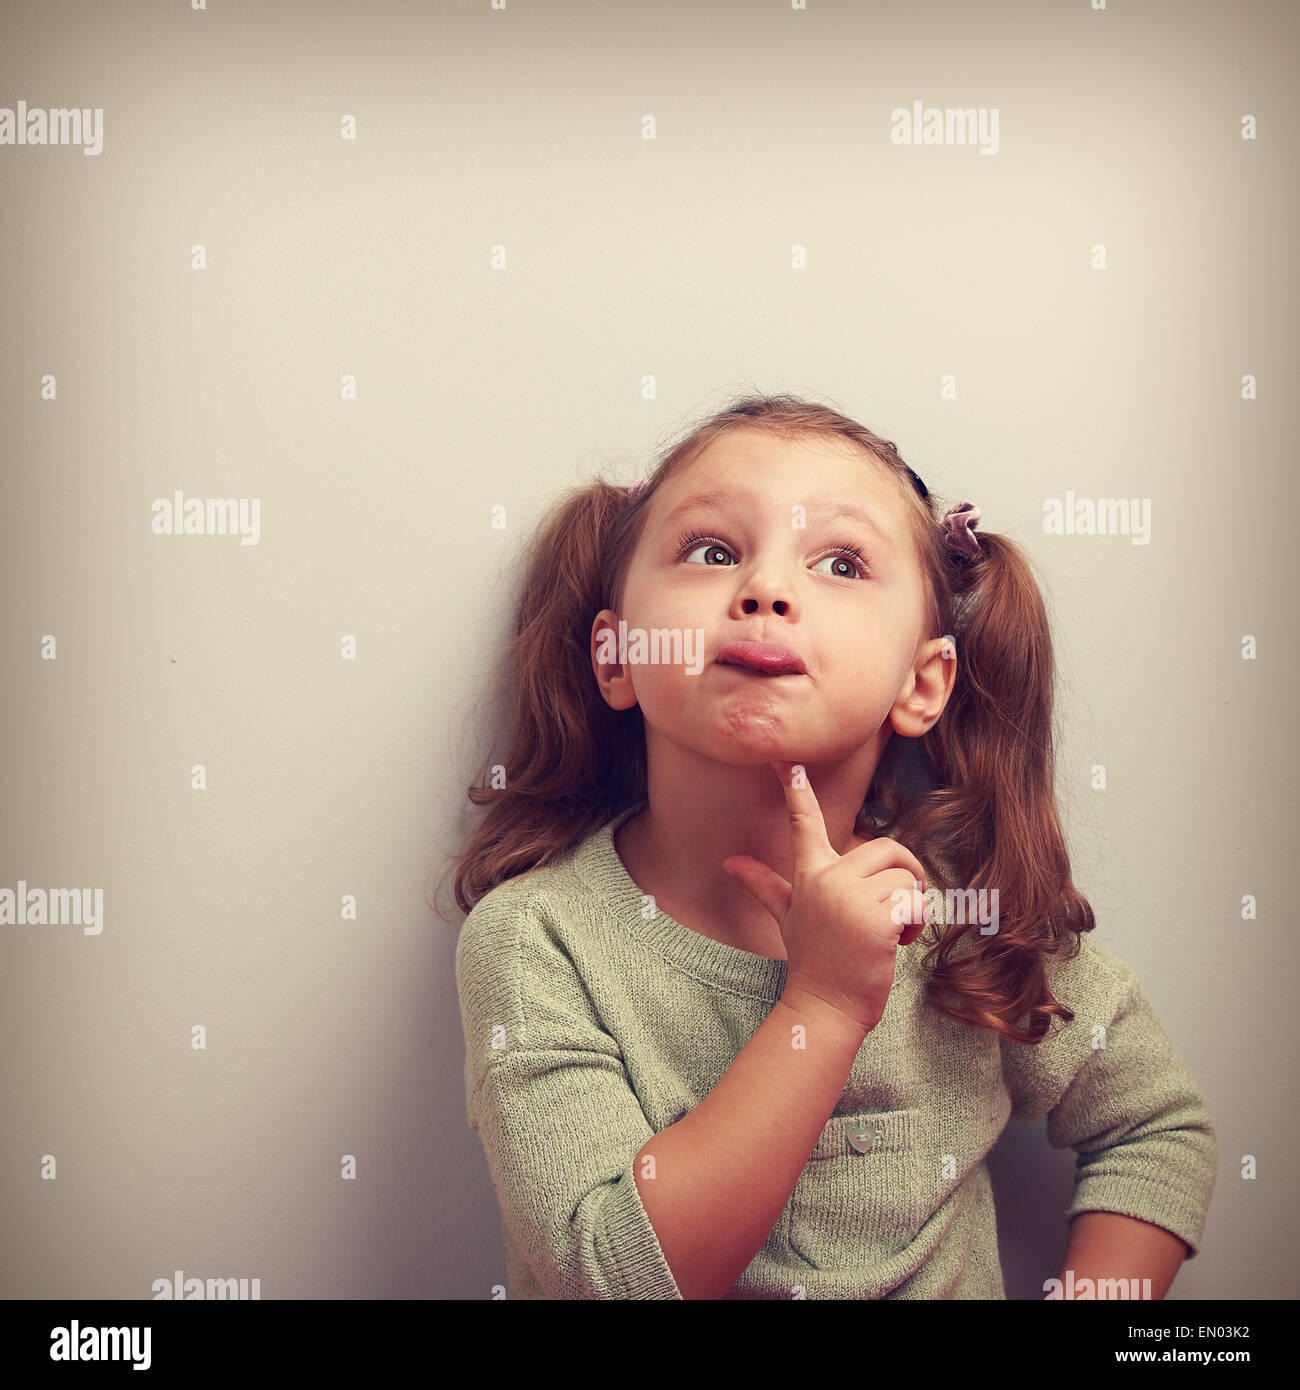 Fun grimacing girl thinking and looking up. Square vintage portrait with empty copy space - Stock Image